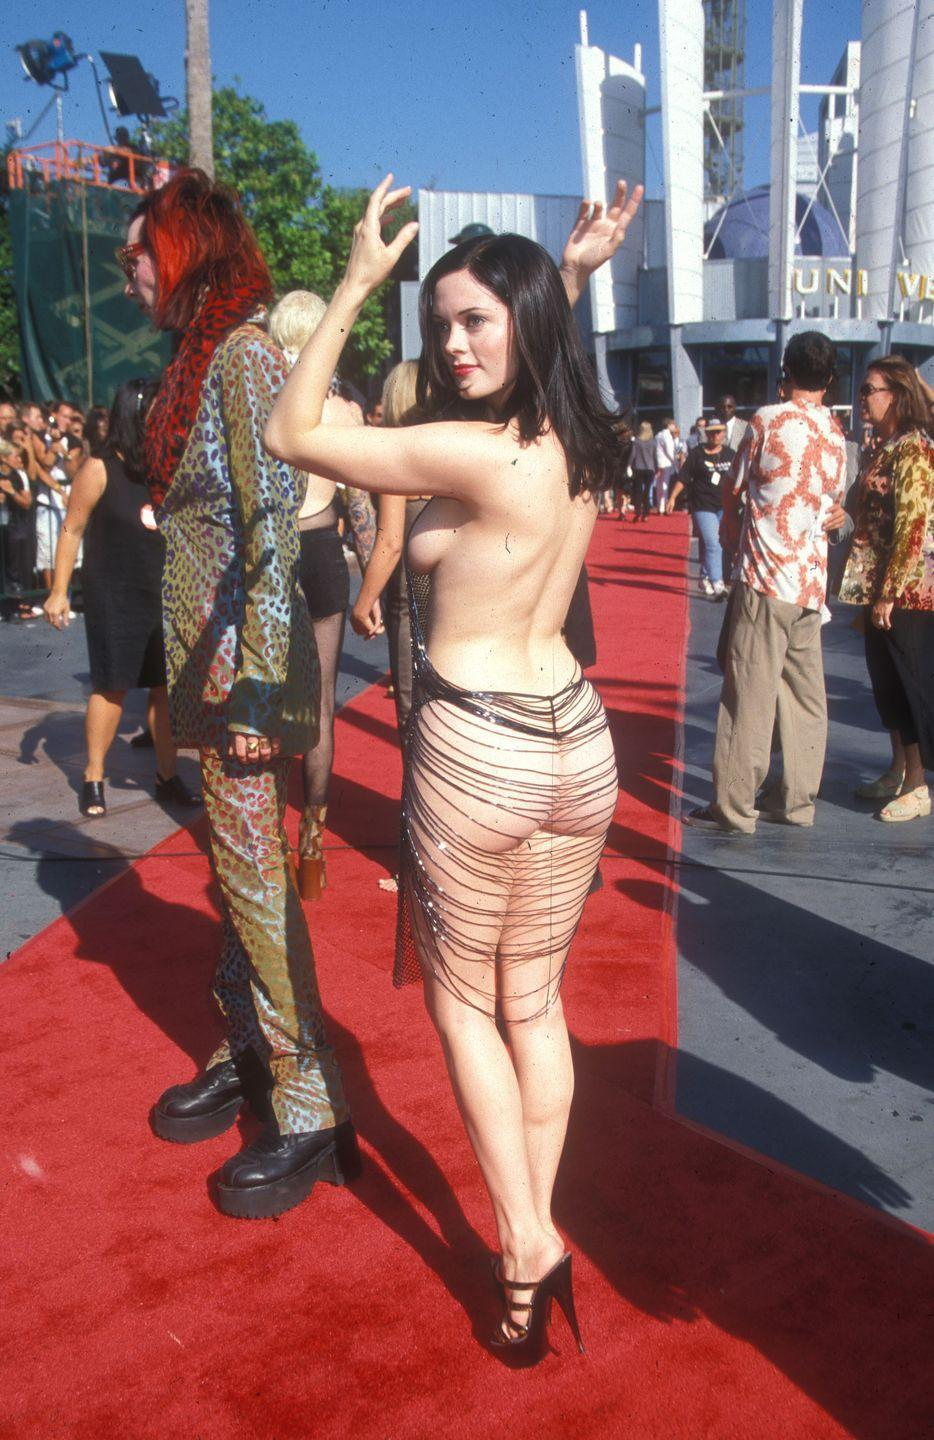 <p>That L.A. heat had nothing on Rose McGowan who was wearing breezy attire to the show in 1998. We've got all sorts of questions with this one.</p>